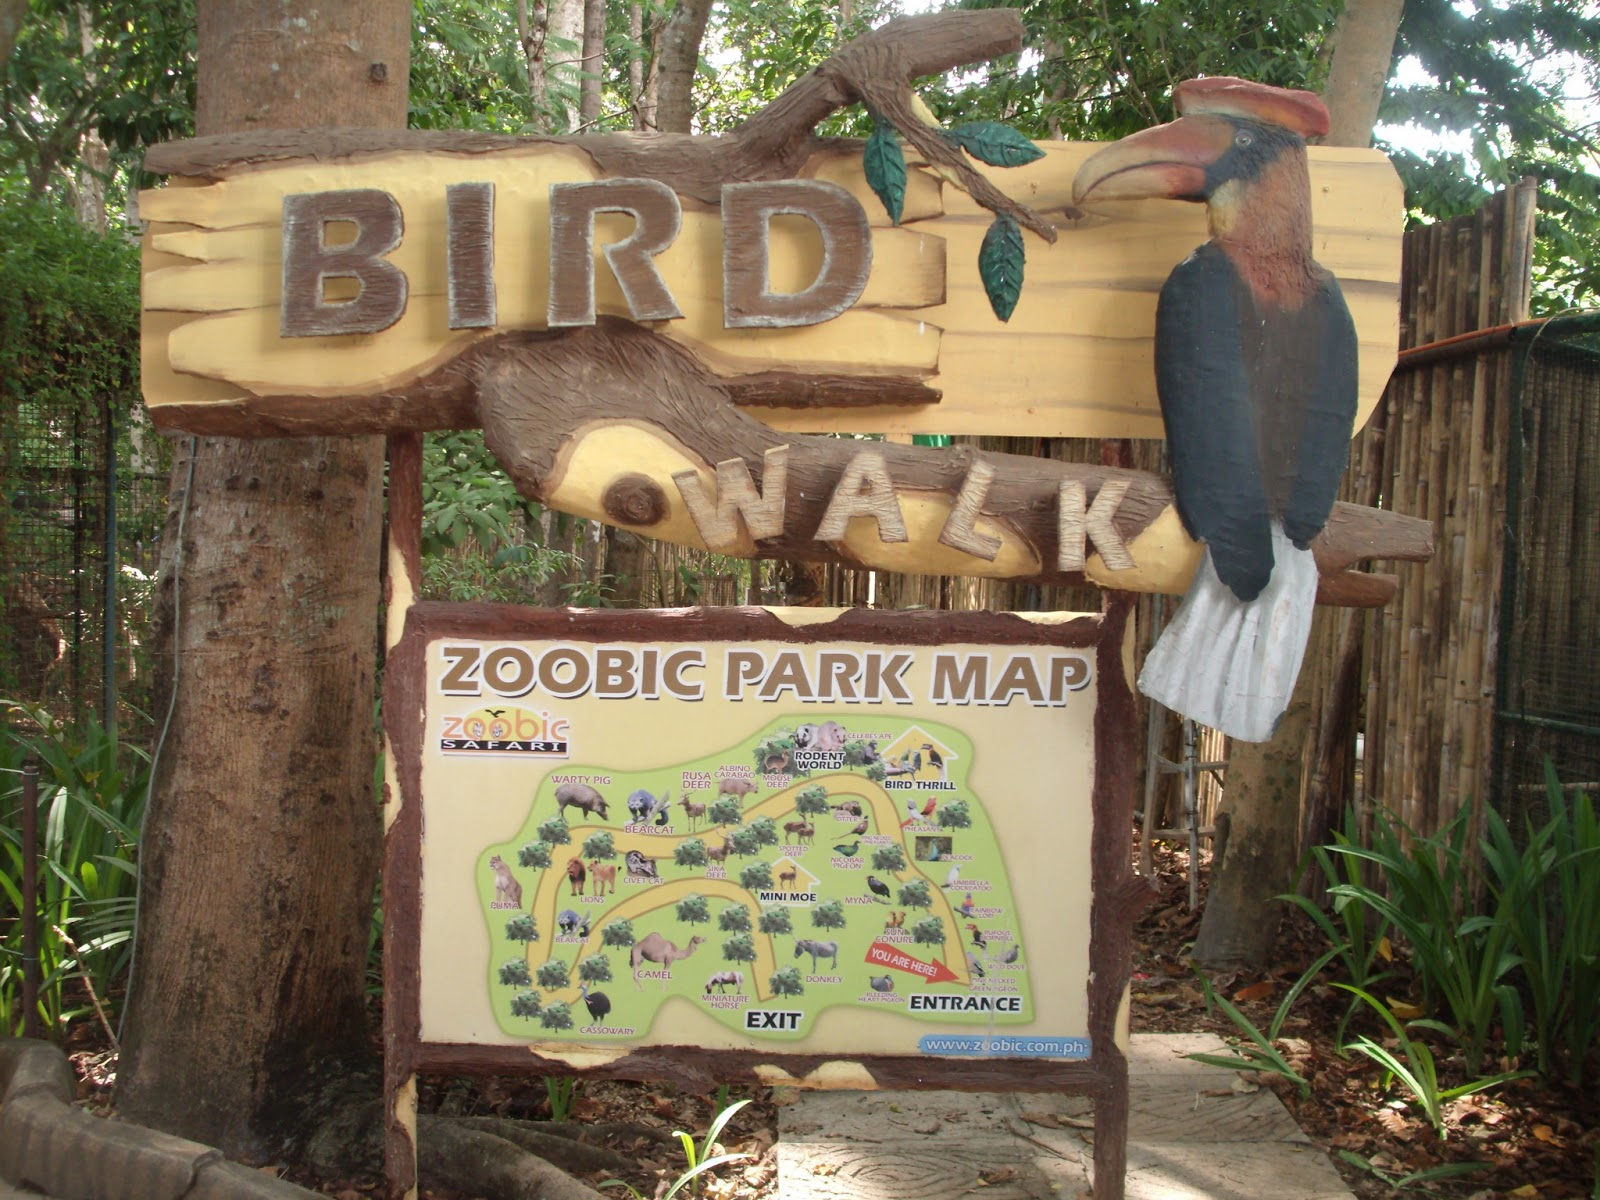 They have tons of animals in there rangingfrom birds, monkeys, cats of